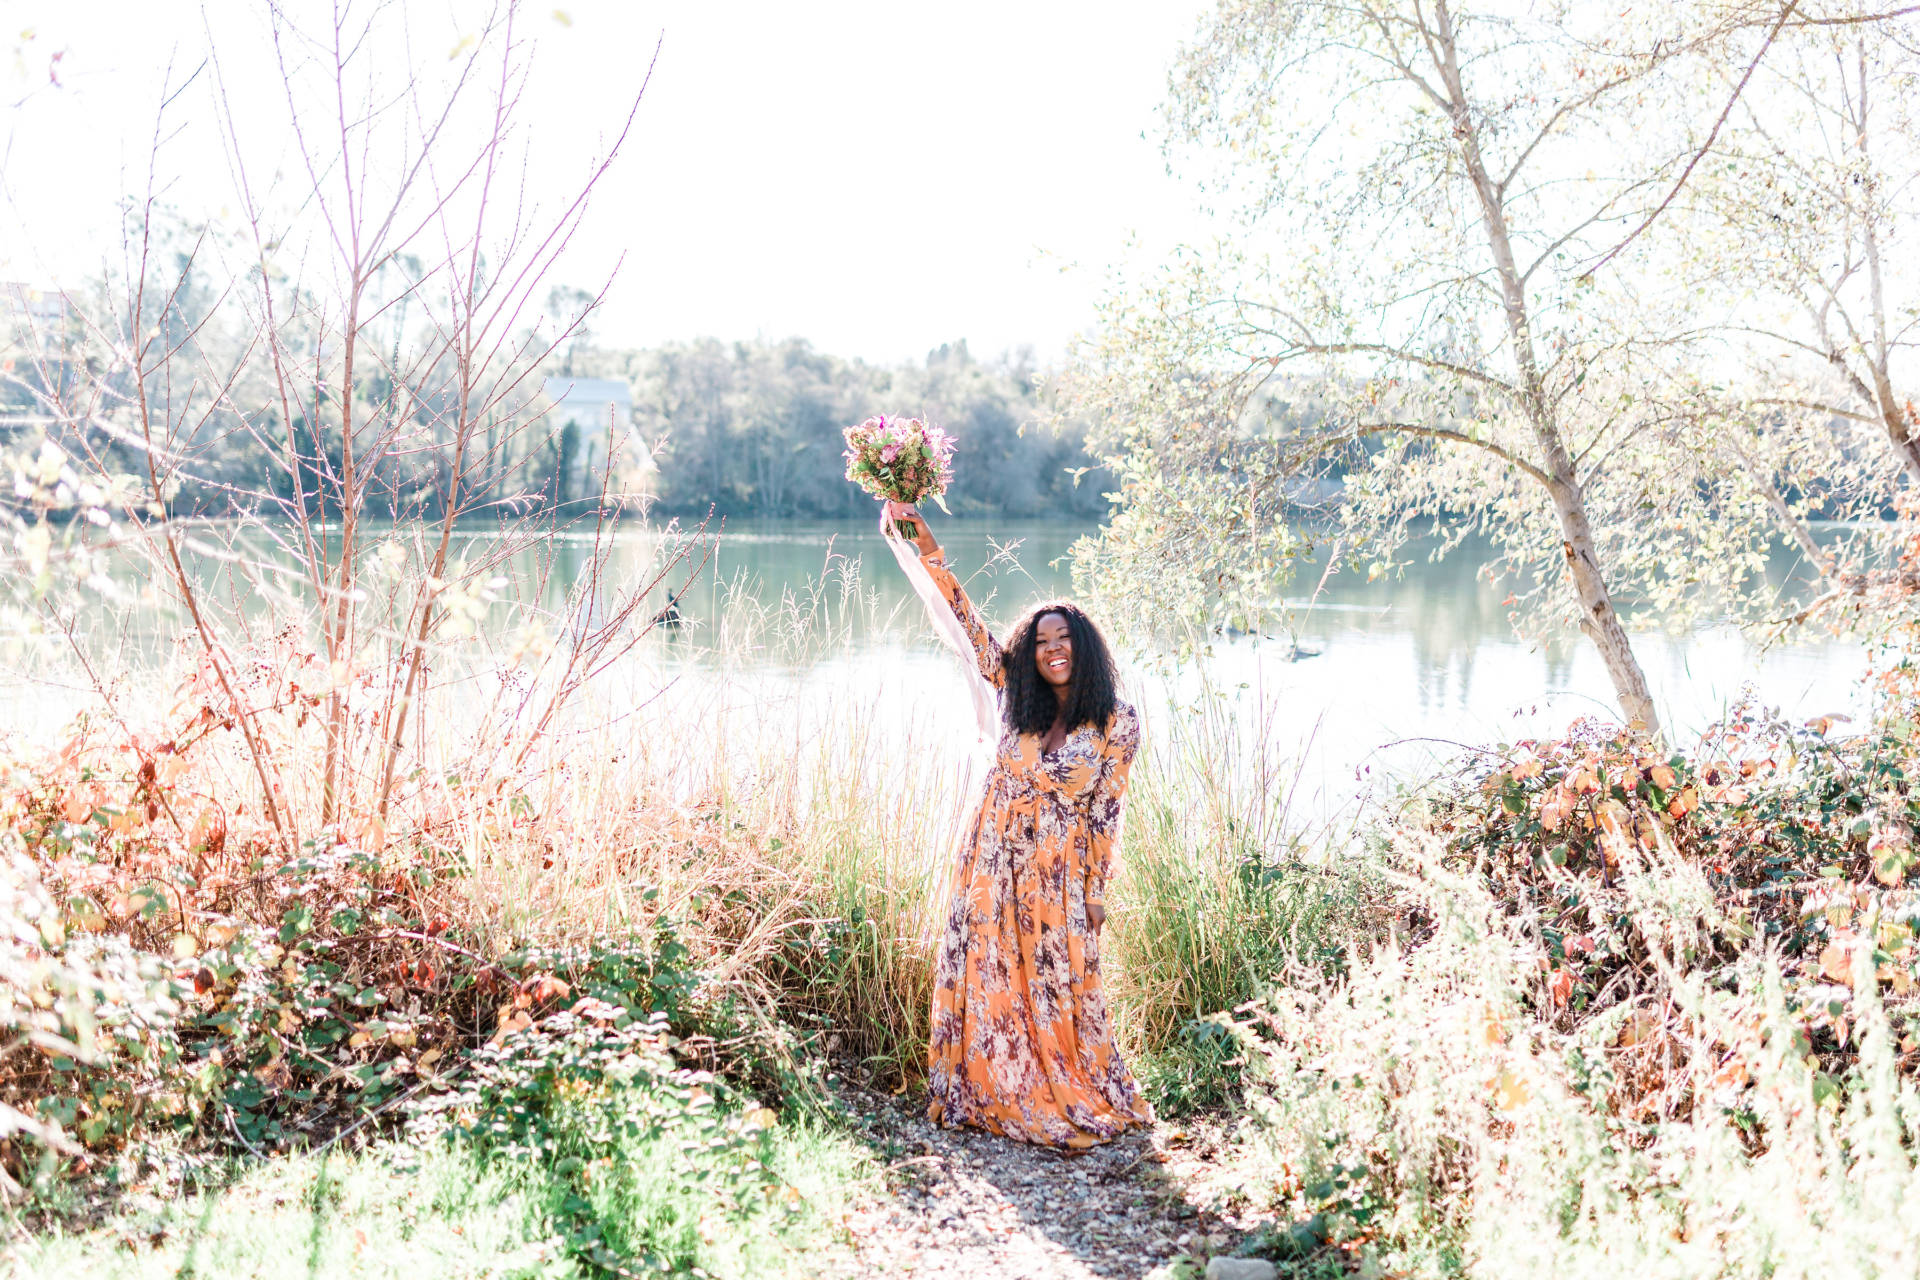 Ruthie Ridley Blog: Celebrating 3 years of blogging! There has been so much I have learned over the years, but the main thing that sticks out is there is nothing impossible with God.